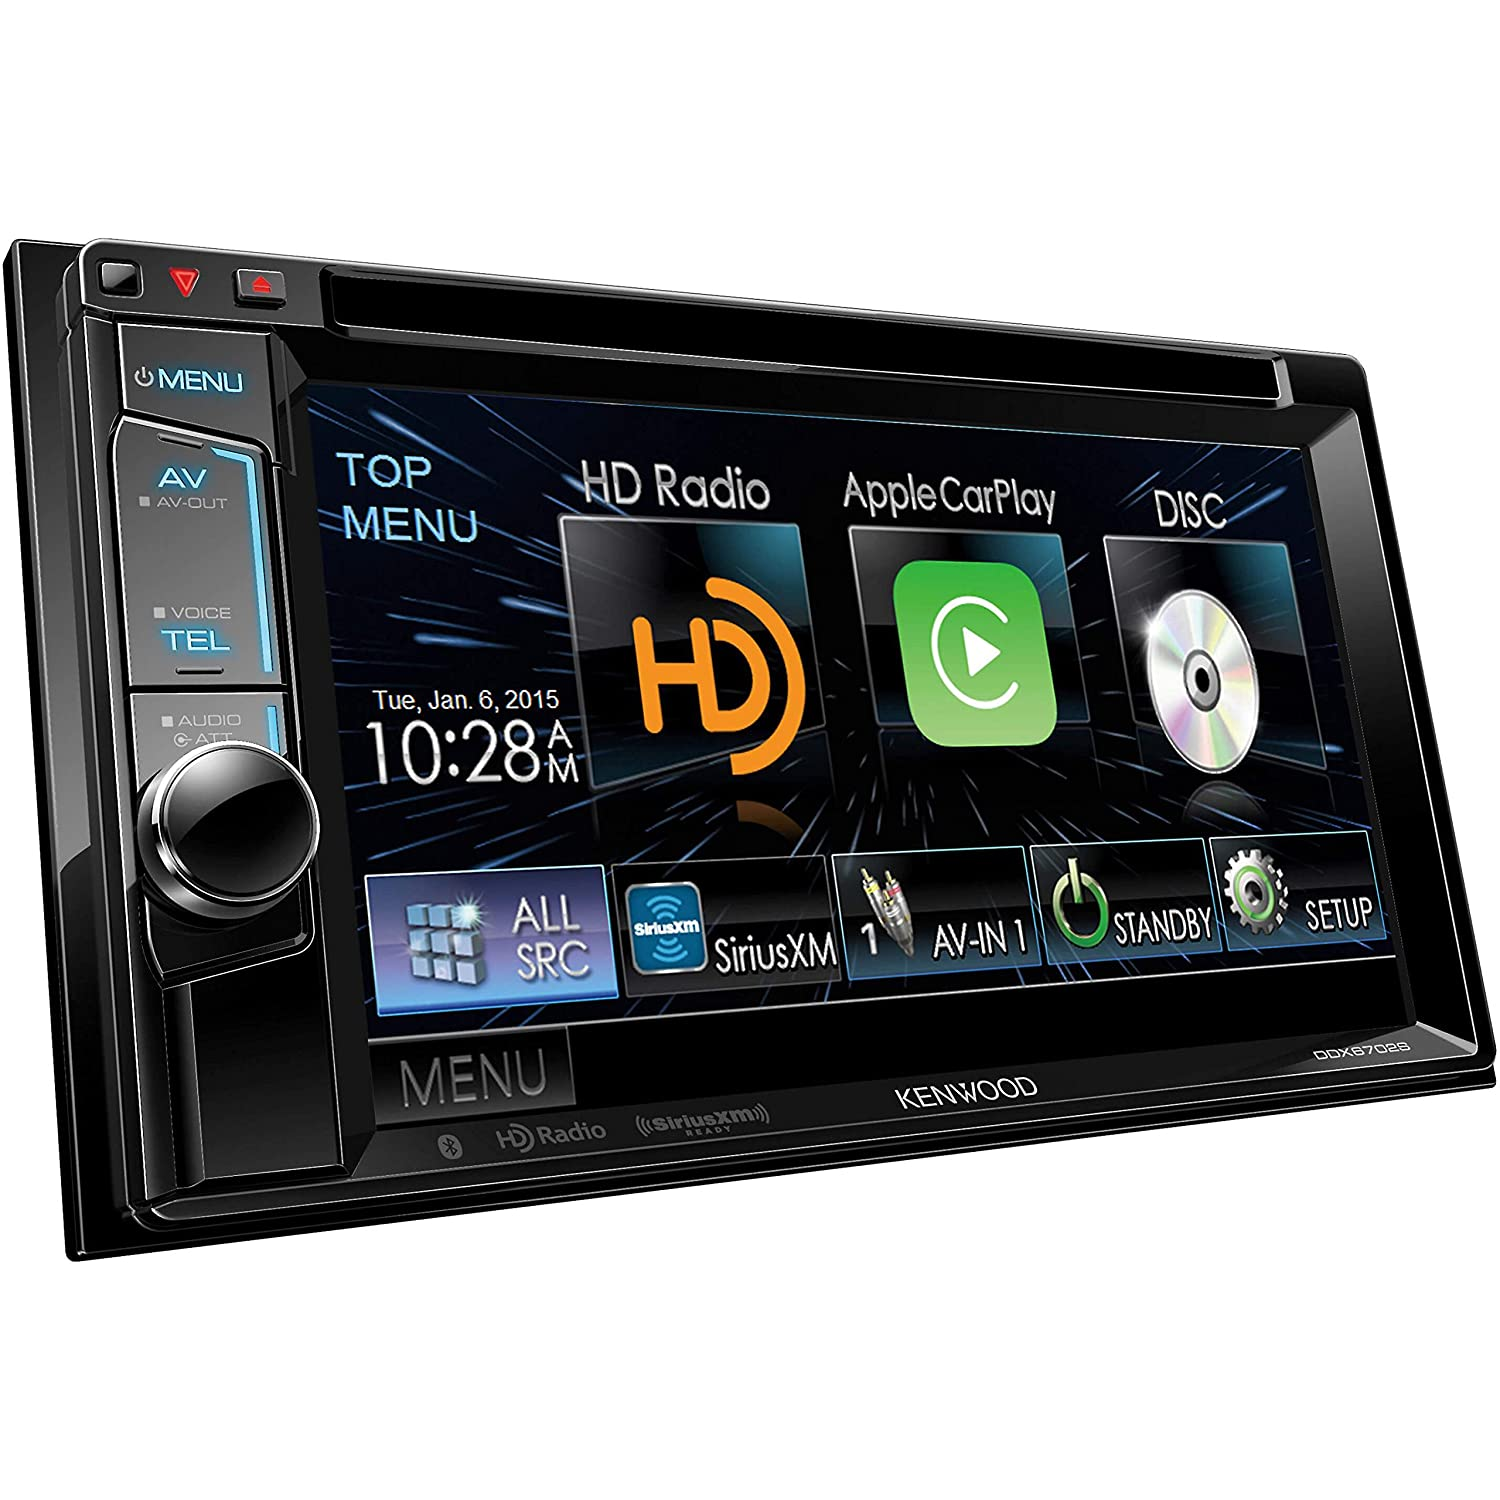 Kenwood Ddx6702s 62 Dvd Receiver With Apple Carplay Chevy Xm Radio Wiring Harness Color Code Bluetooth And Hd Car Electronics